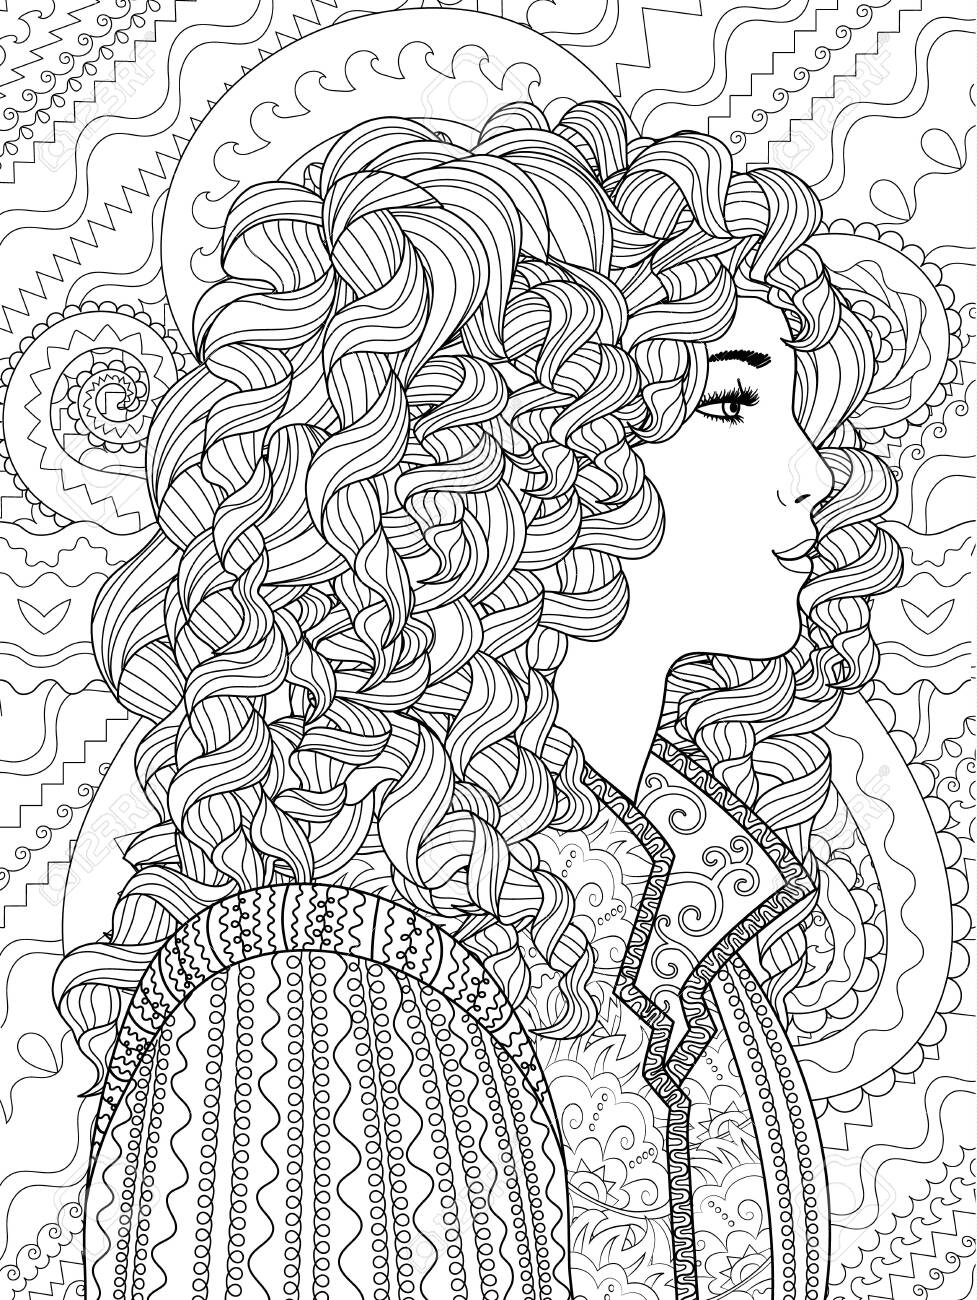 Free Coloring Pages For Medieval Times, Download Free Clip Art ... | 1300x977